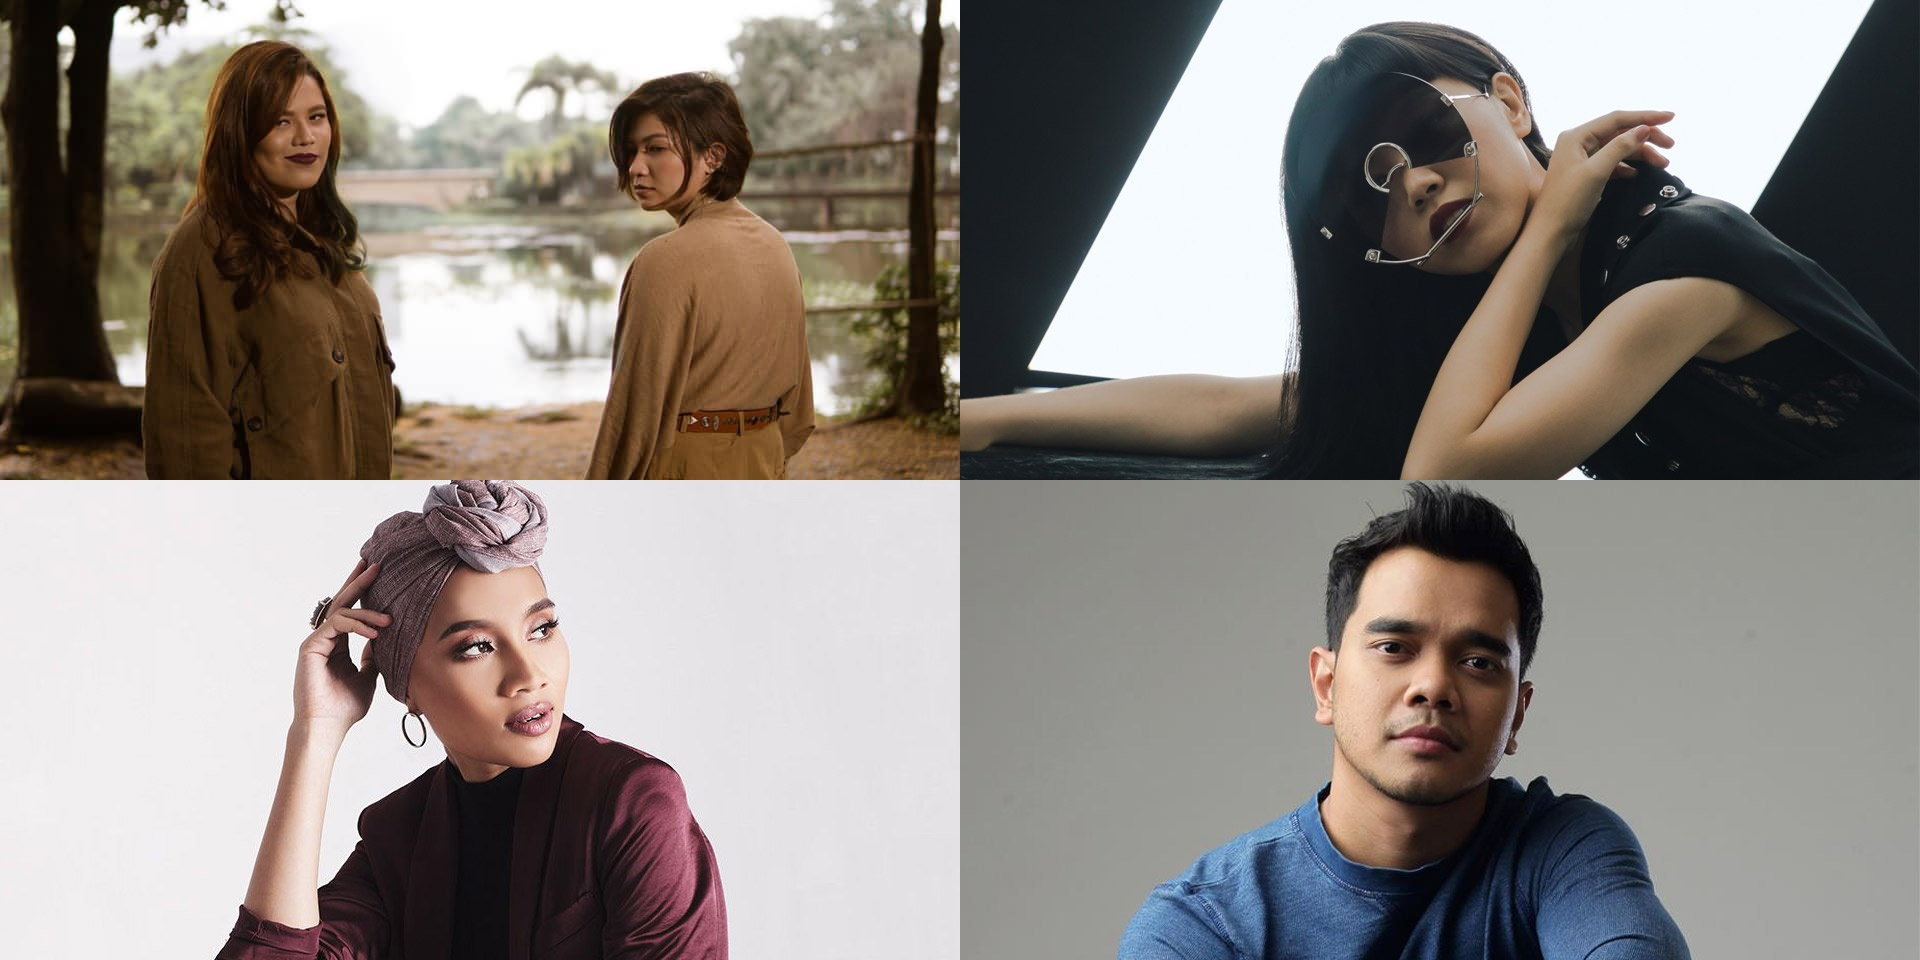 Leanne & Naara, Yuna, Jasmine Sokko, Alif Satar, and more share their quarantine playlists on At Home With Apple Music